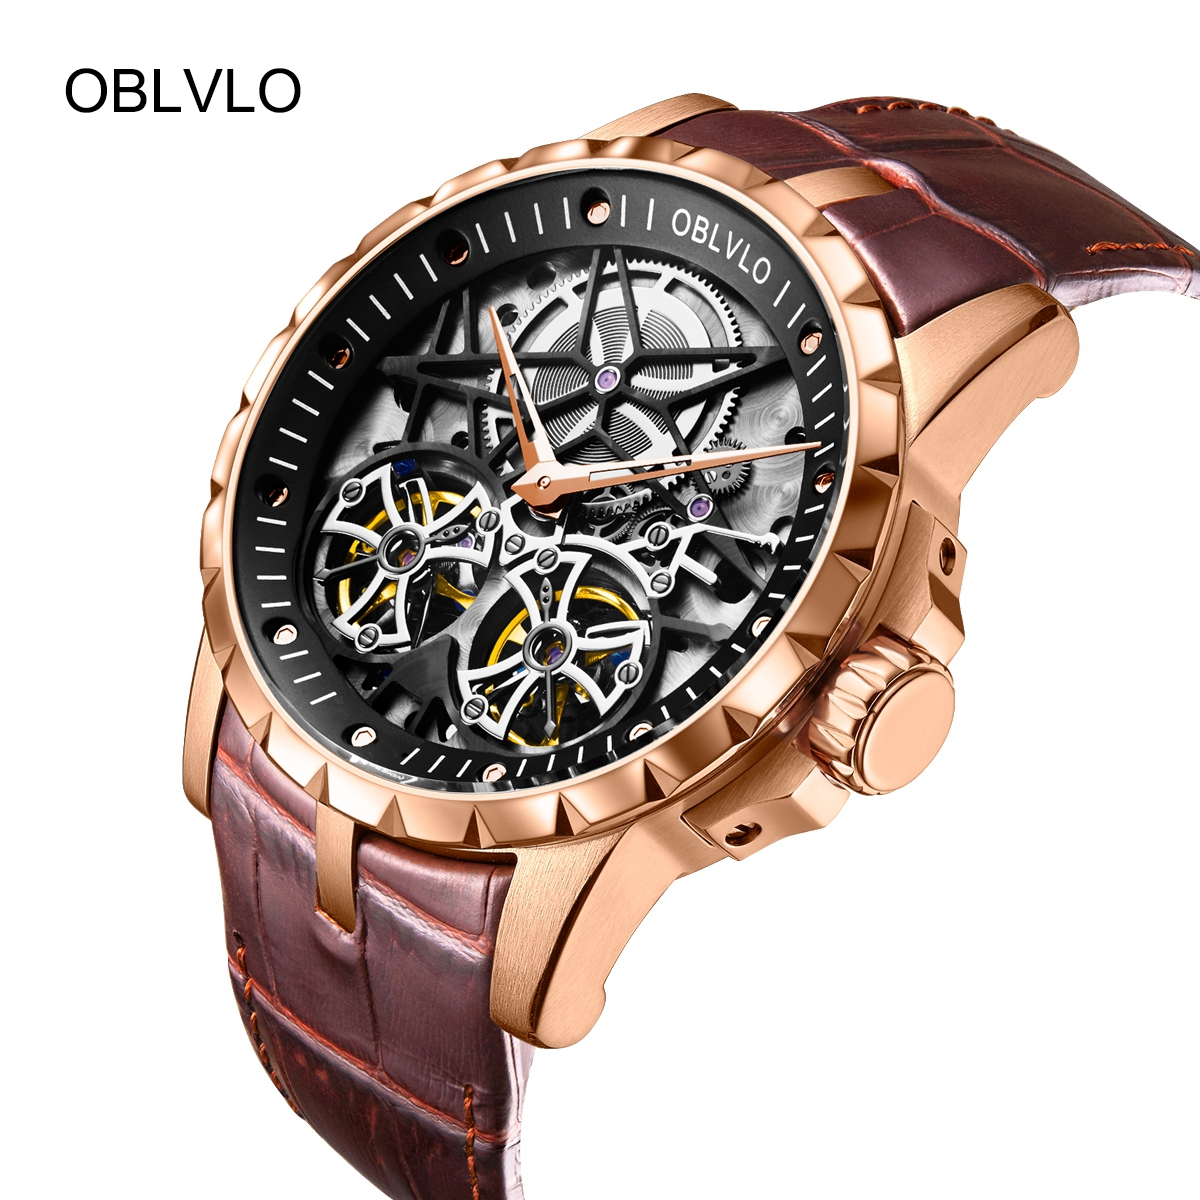 OBLVLO Men\'s Luxury Tourbillon Watches Transparent Rose Gold Skeleton Leather Mechanical Watch OBL3606RSBW